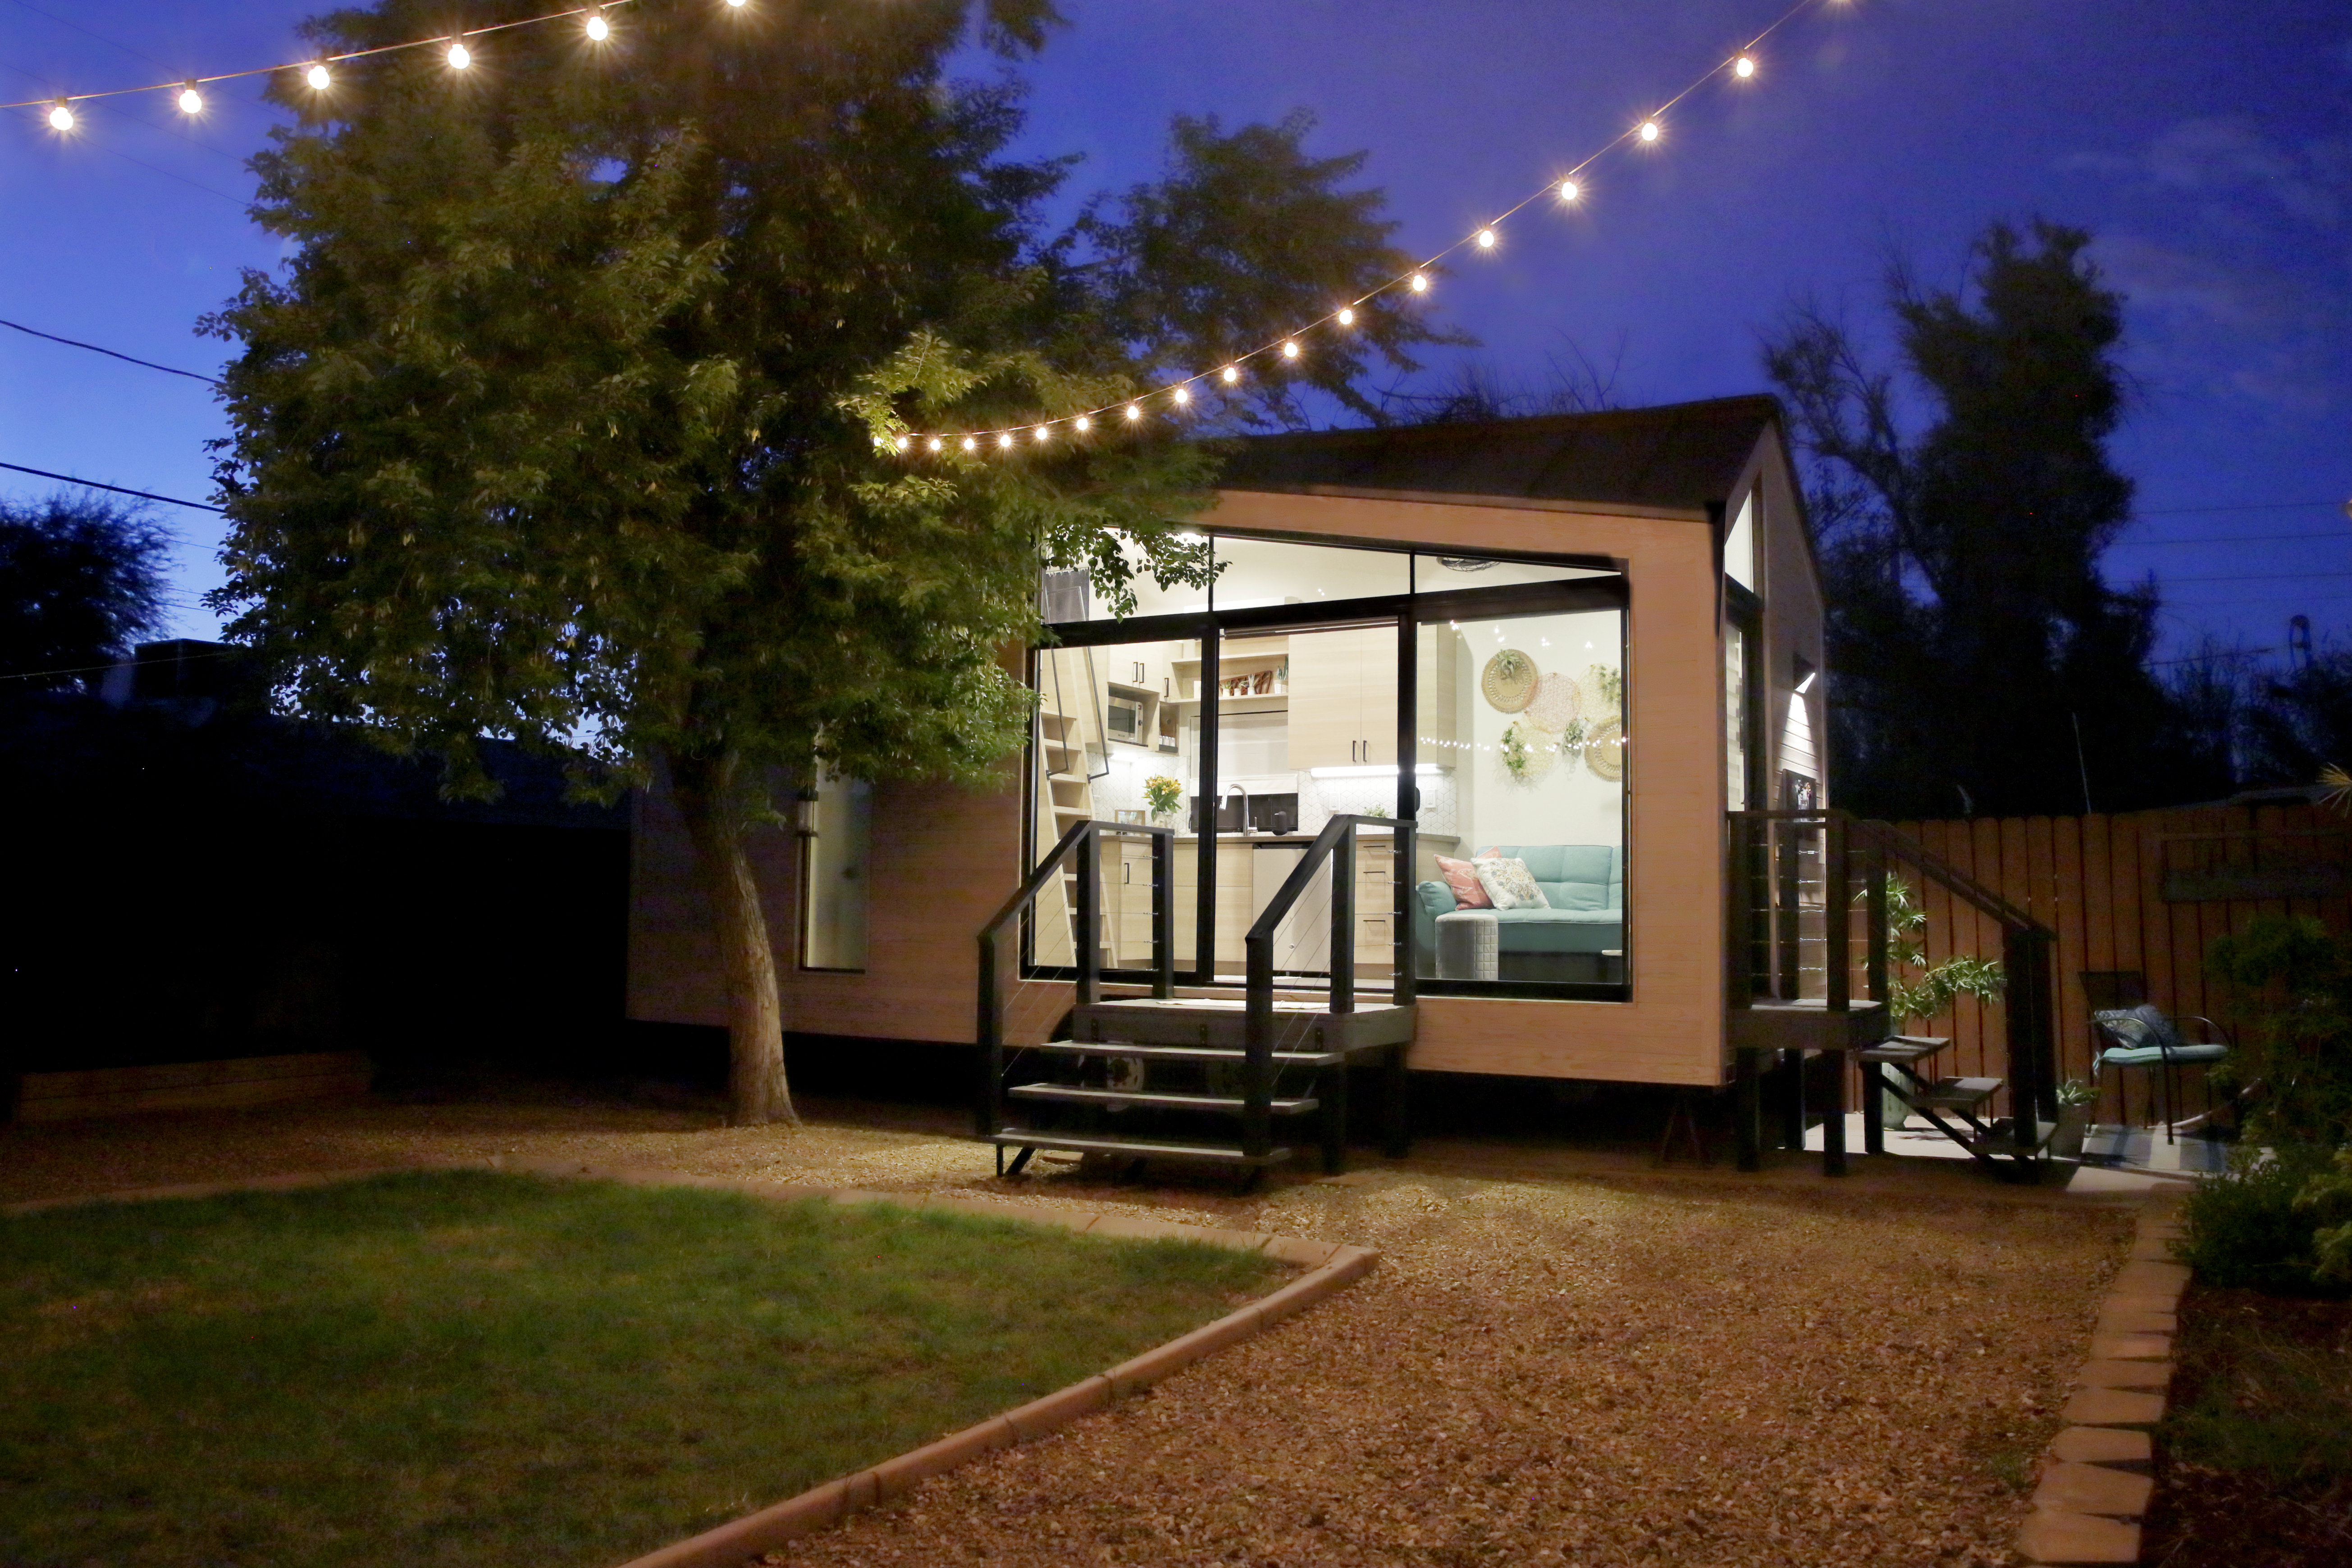 A tiny house with large glass windows, sits in the backyard at night, surrounded by trees and party lights.